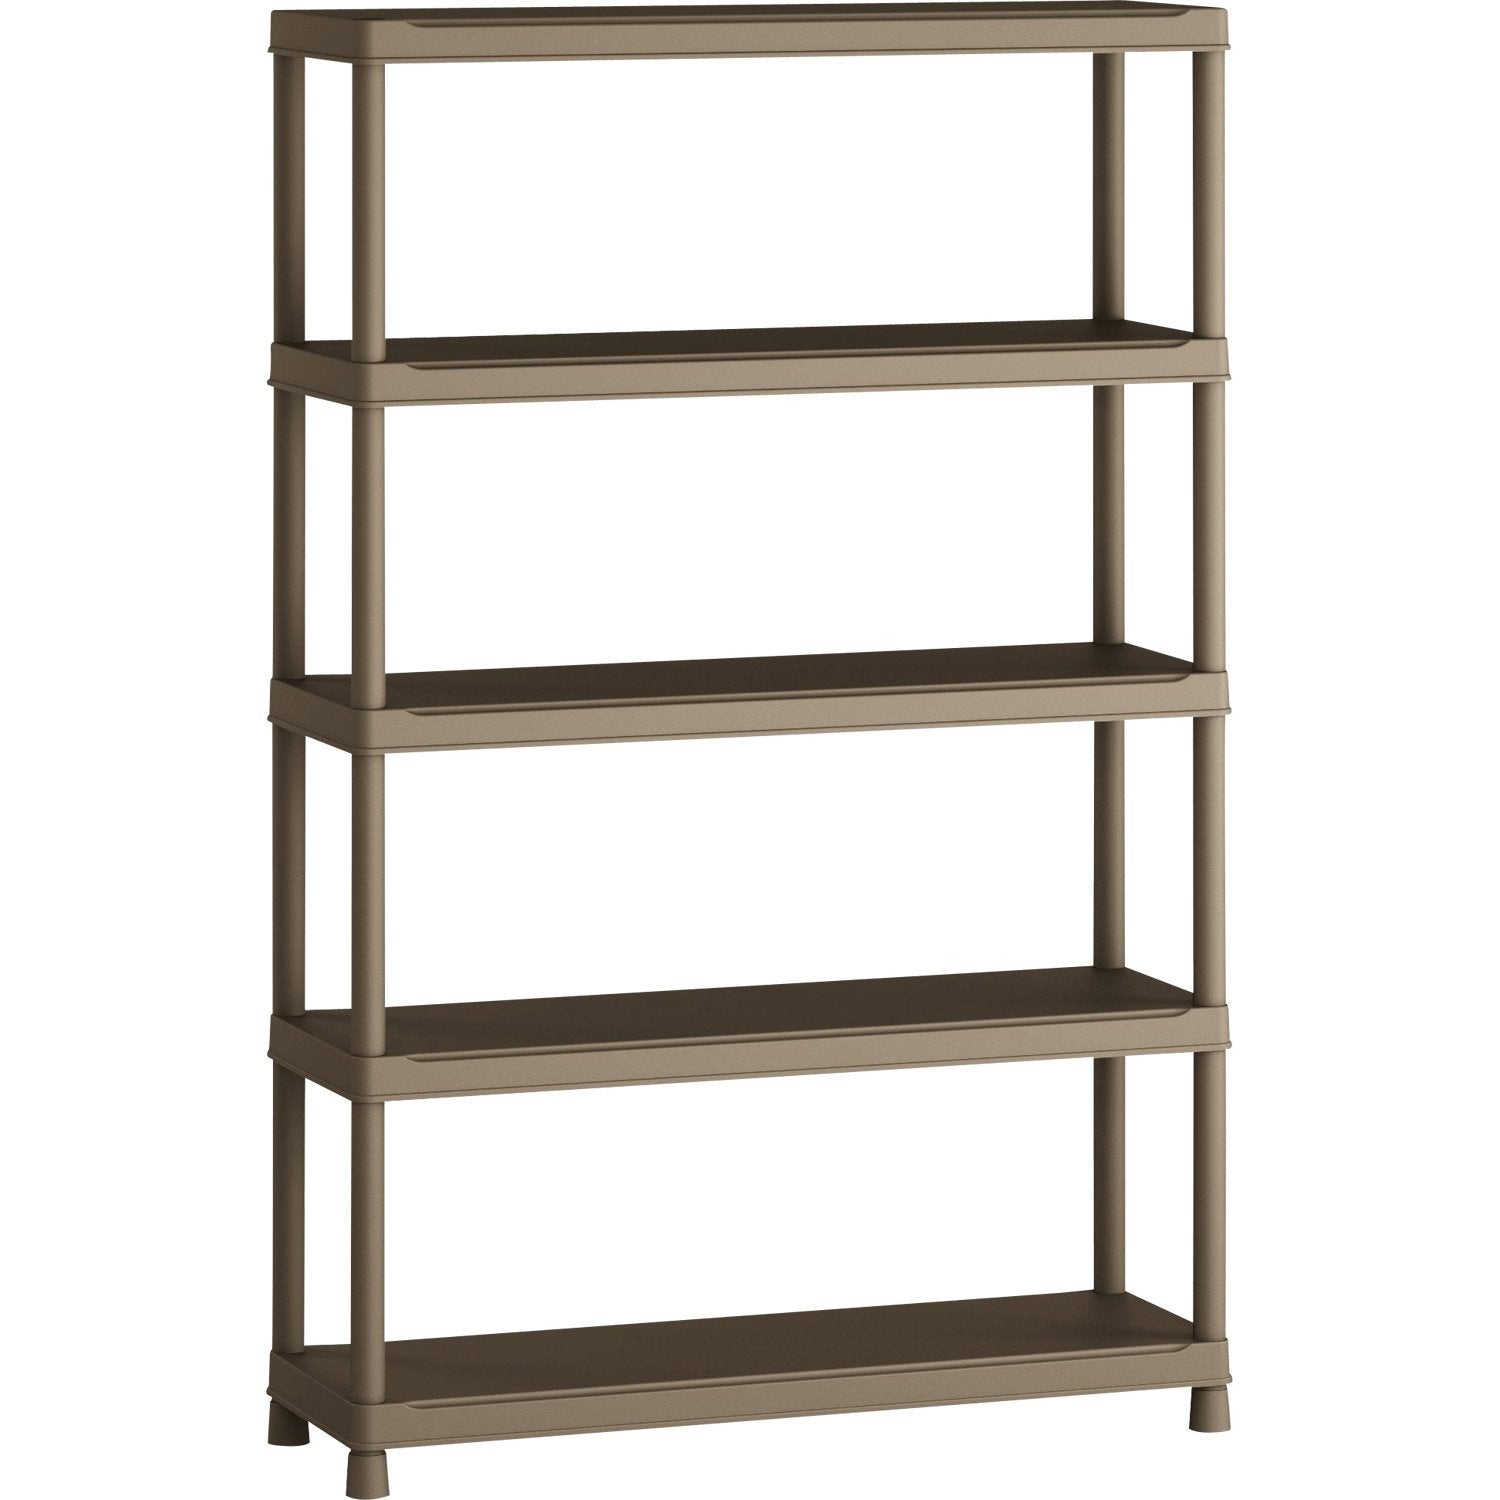 Etag re r sine spaceo 5 tablettes terre l120xh181xp40 cm leroy merlin - Etagere garage leroy merlin ...